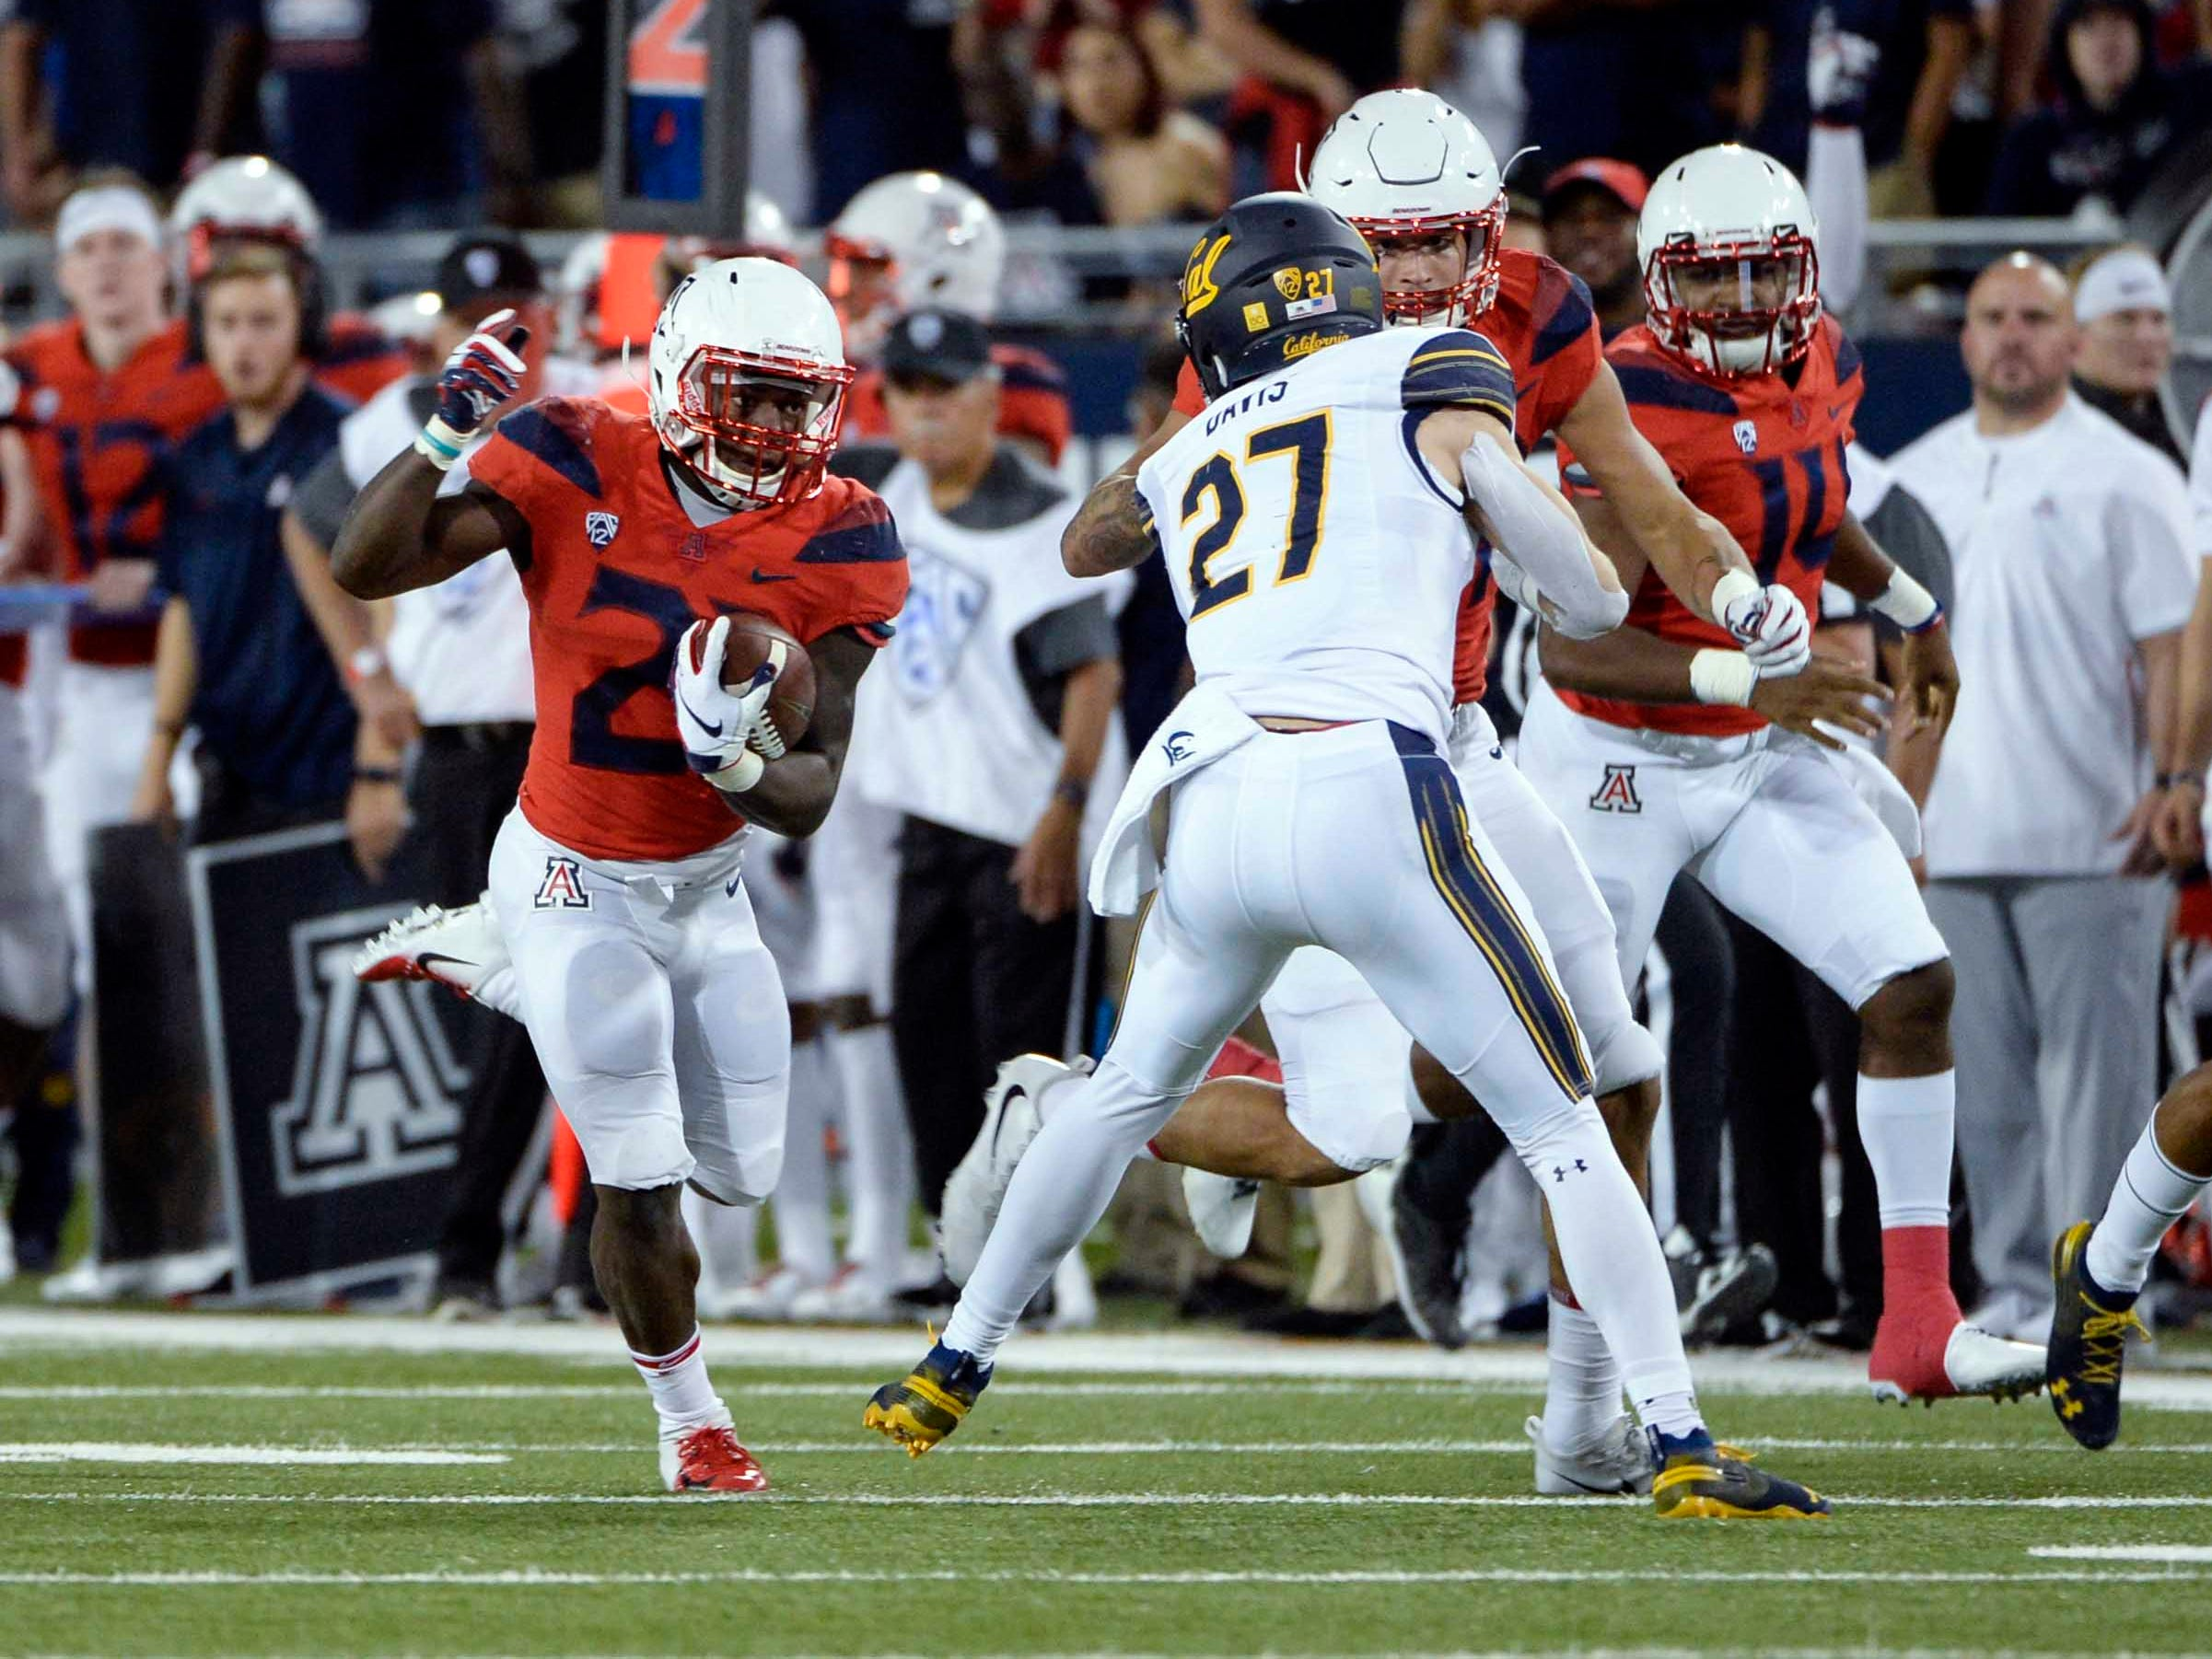 Oct 6, 2018; Tucson, AZ, USA; Arizona Wildcats running back J.J. Taylor (21) runs the ball against the California Golden Bears during the first half at Arizona Stadium. Mandatory Credit: Casey Sapio-USA TODAY Sports